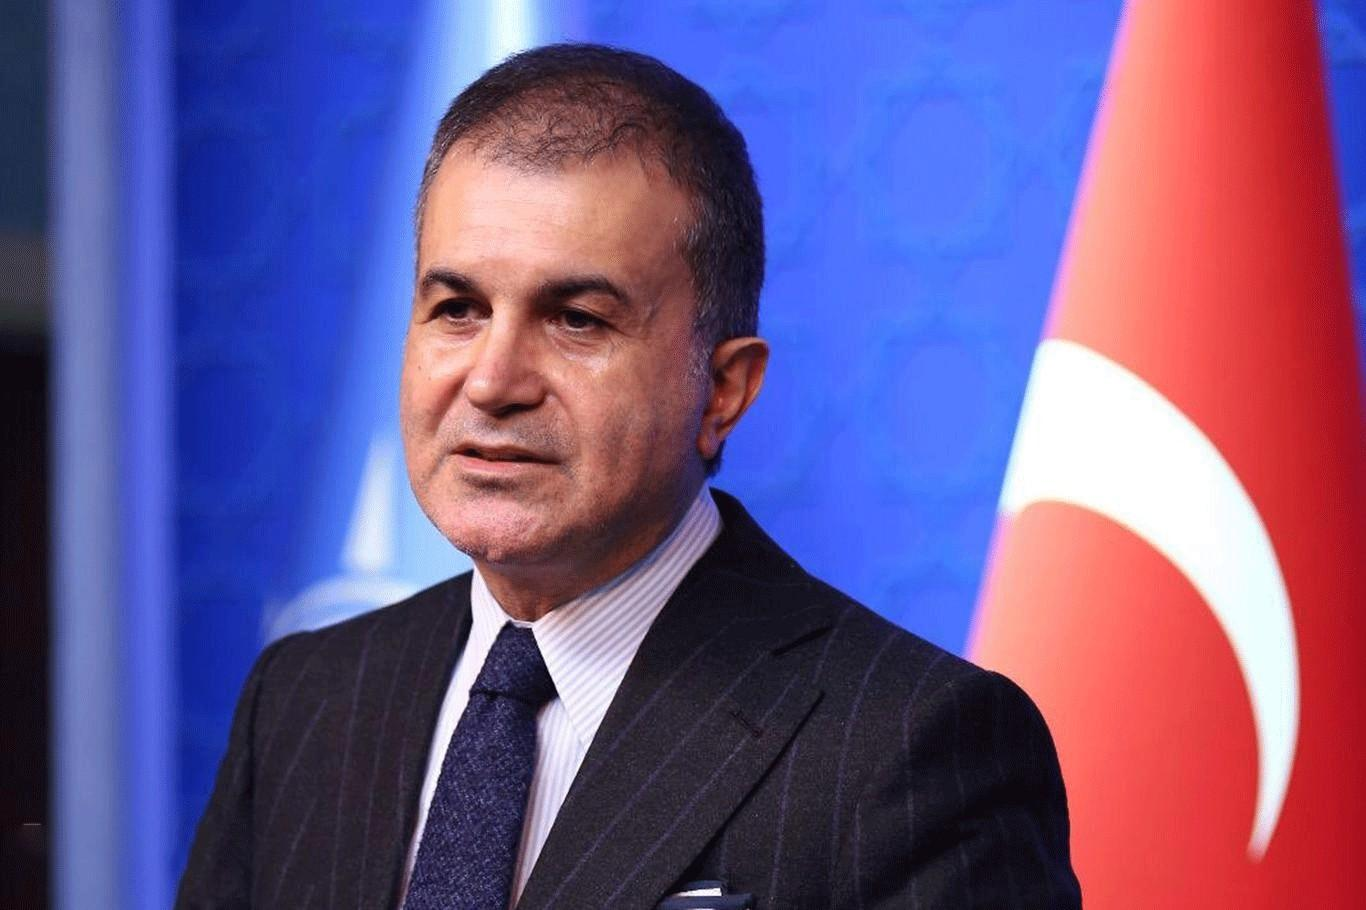 AK party condemns US move on Armenian events